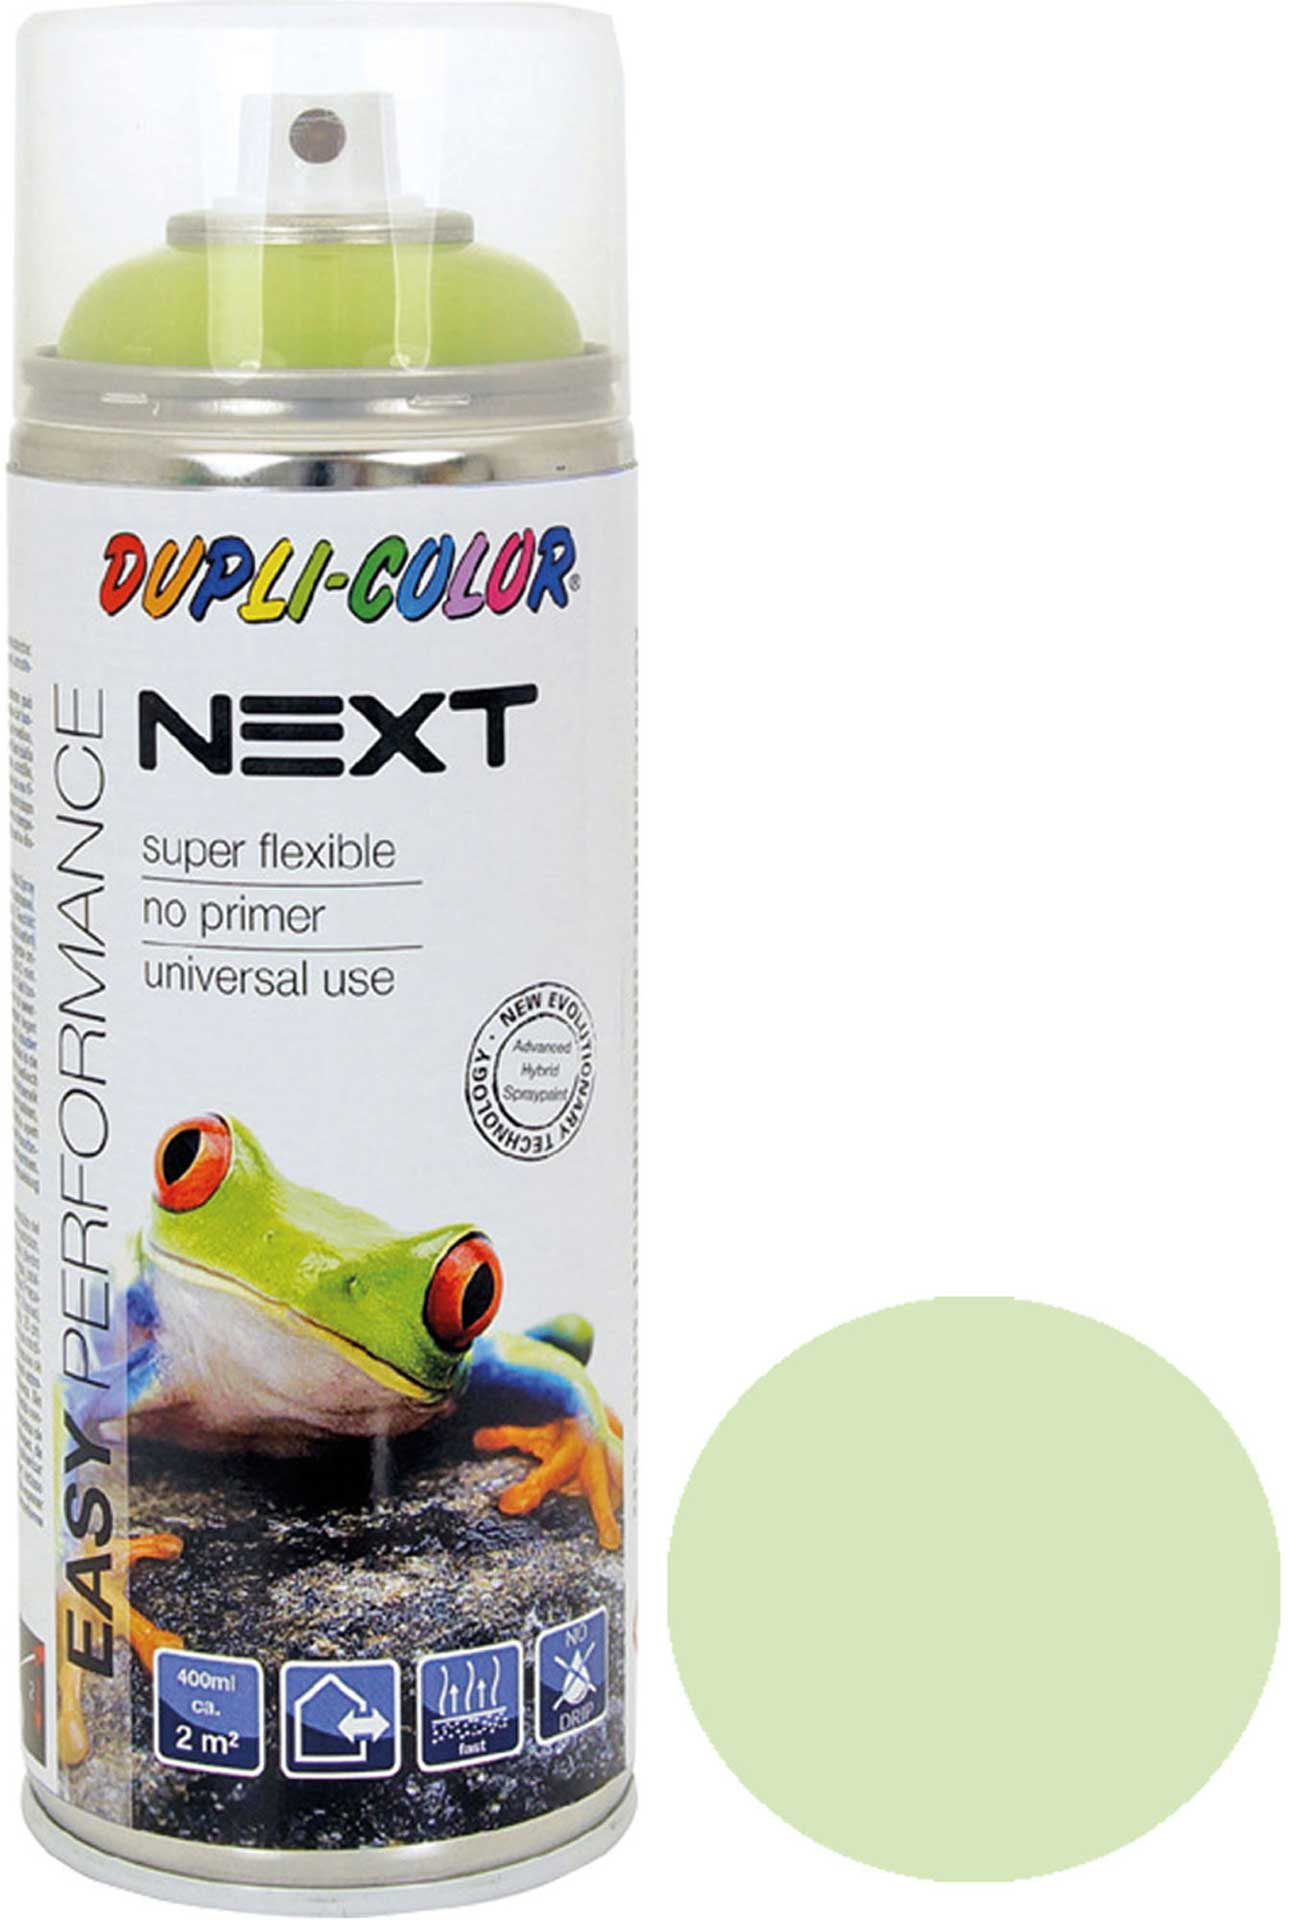 DUPLI-COLOR NEXT VIENNA LIGHT GREEN SDM. 400ML SPRAY LACQUER